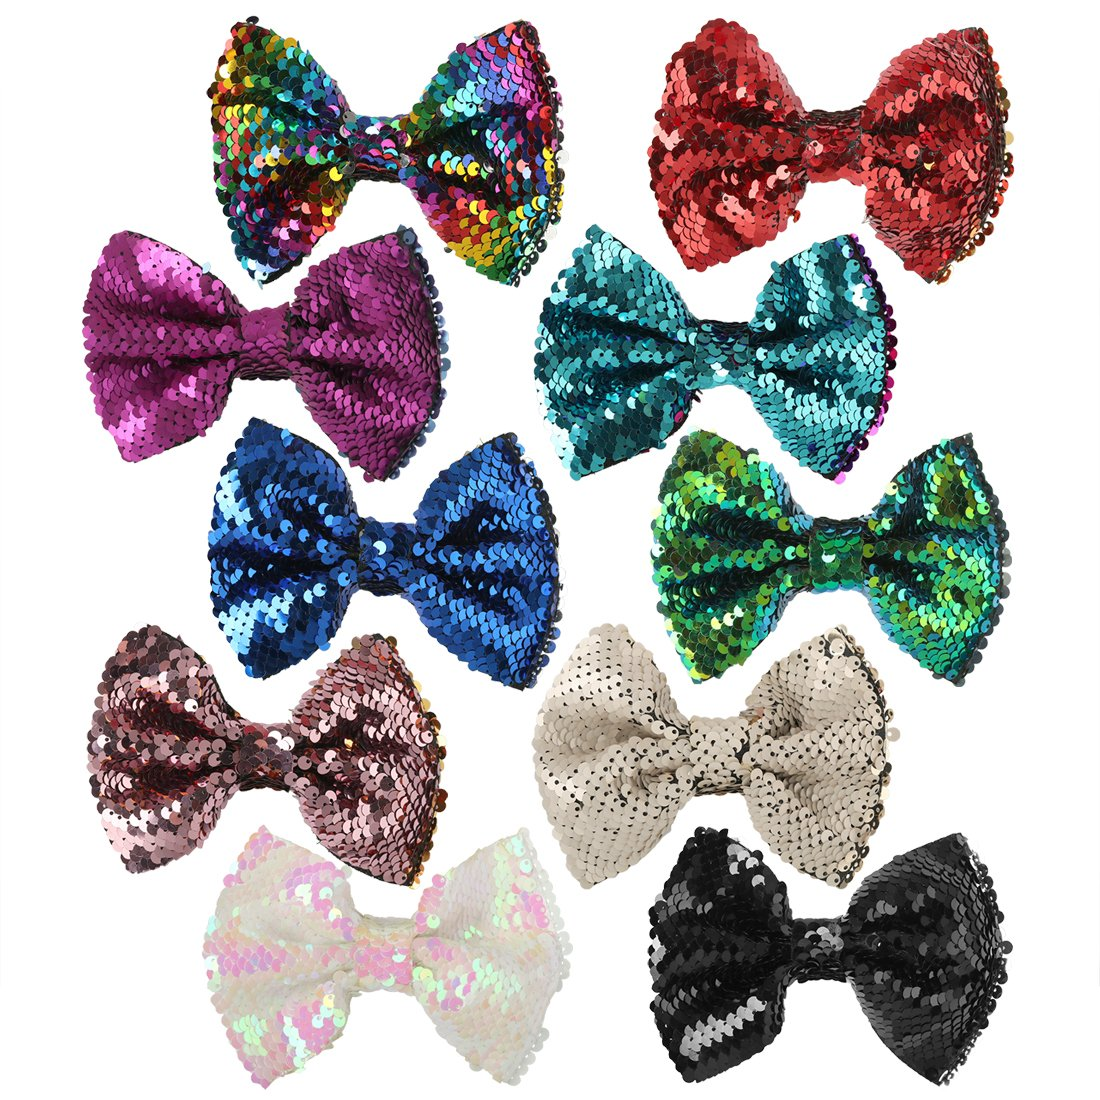 10pcs 5inch Flip Sequins Hair Bows for Girls Bling Sparkle Two Toned Bows with Alligator Clip (5in Flip sequin bows-10pcs)